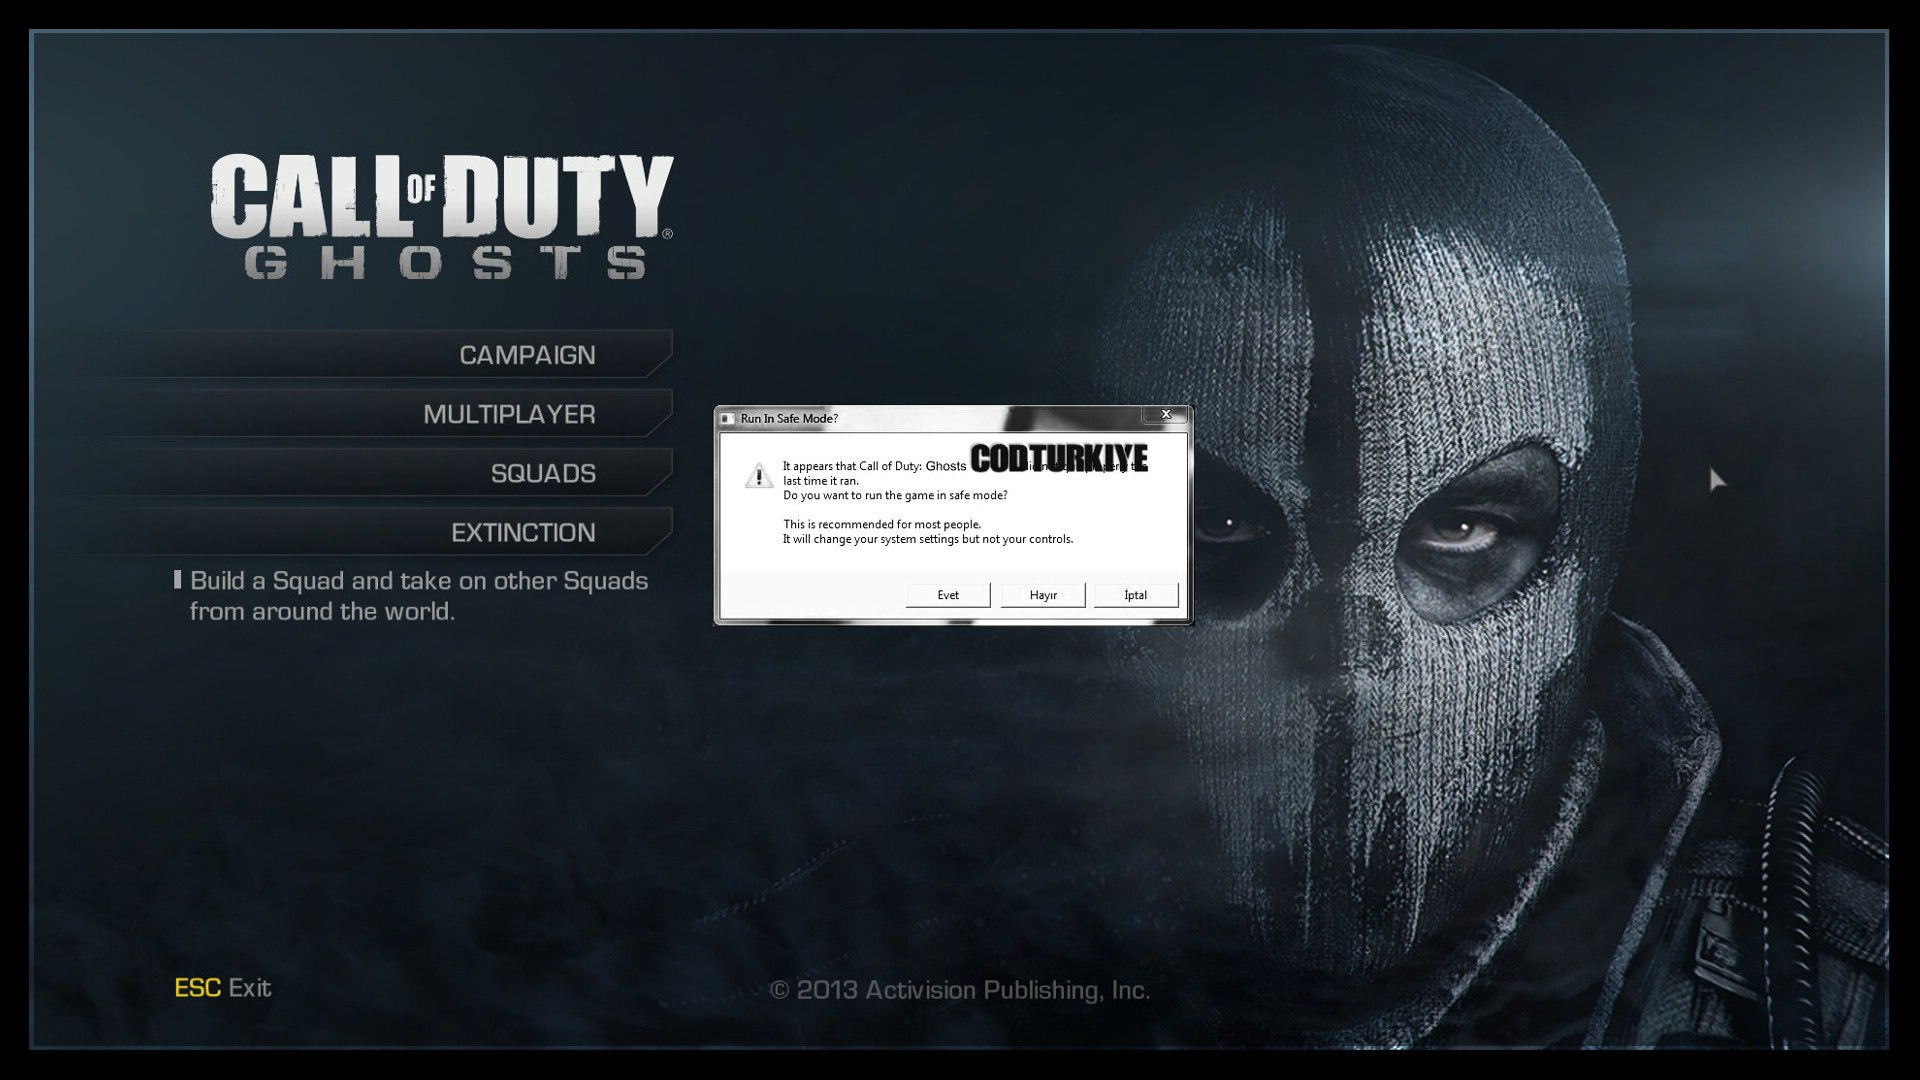 Call of Duty Ghosts Run in Safe Mode Error